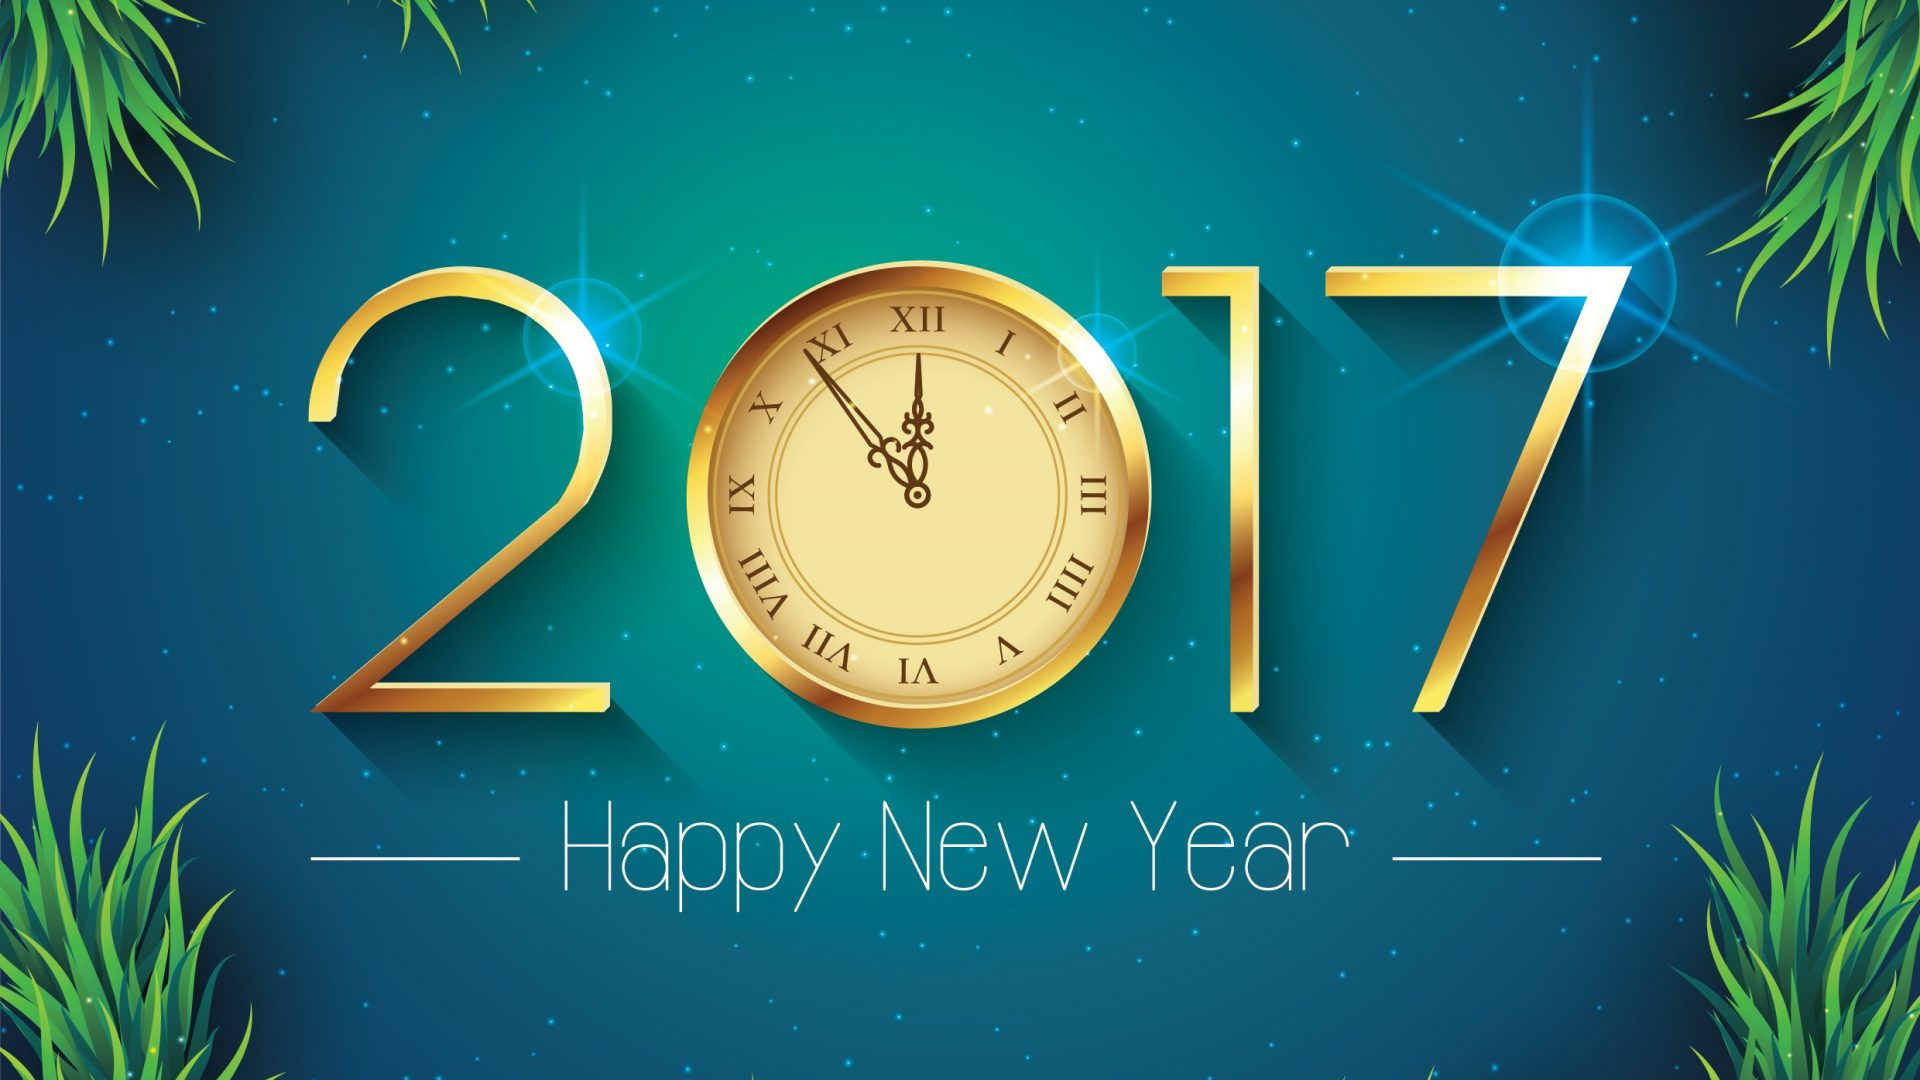 Greet New Year 2017 with Best Wishes, Quotes and Greeting Cards